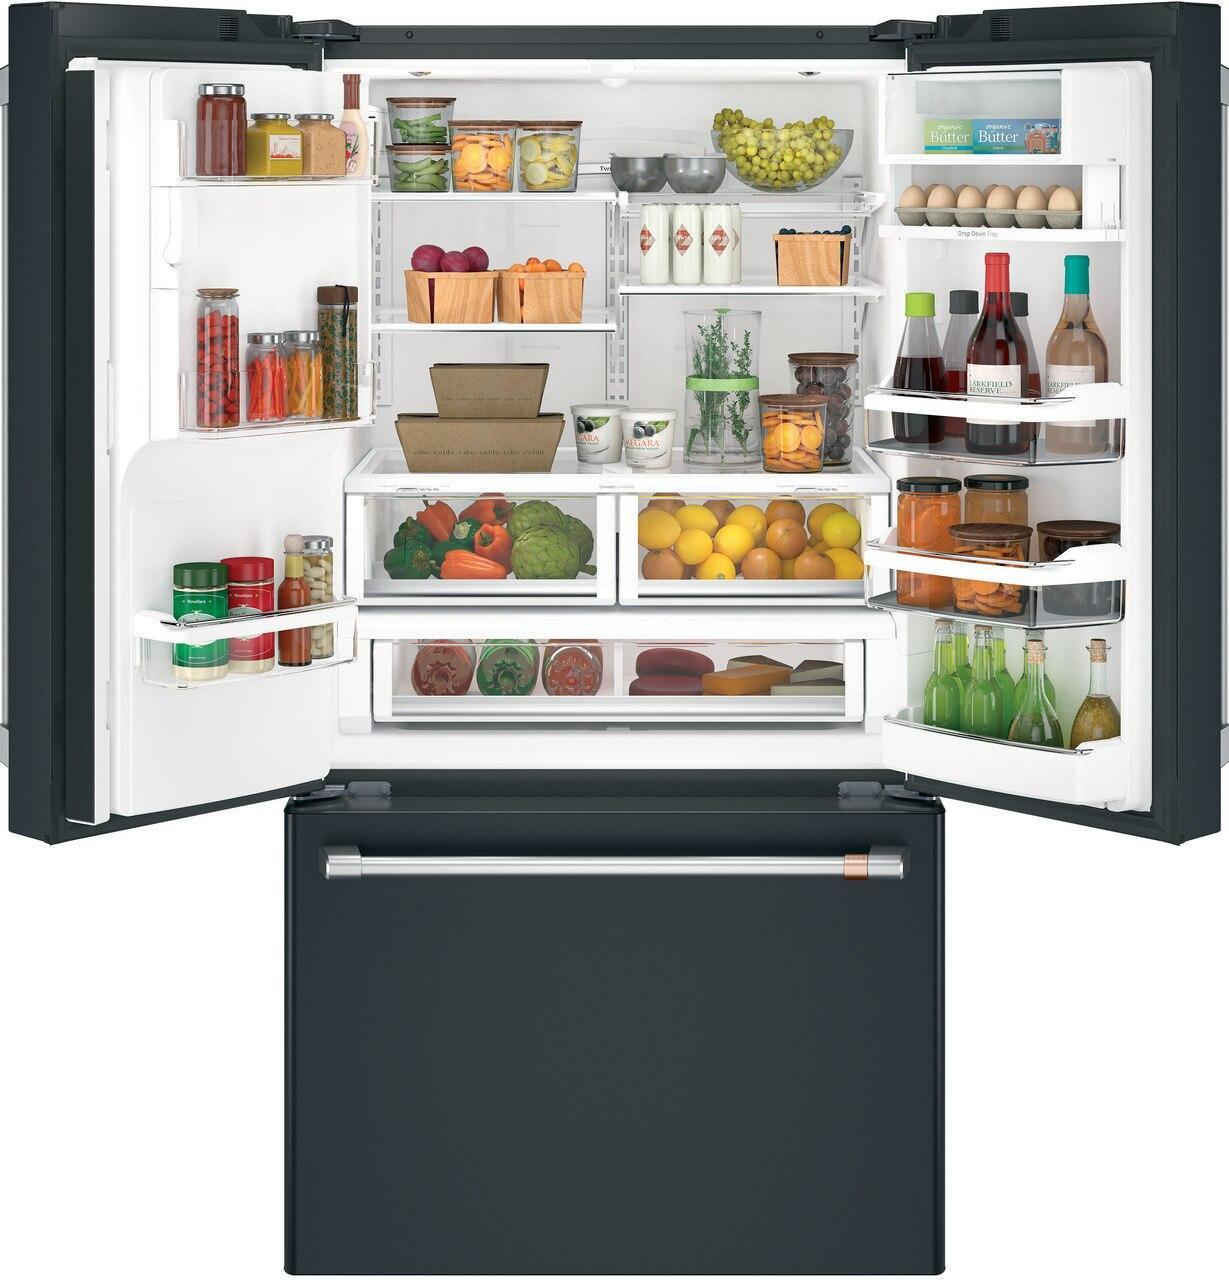 Cafe Appliances French Door Refrigerators